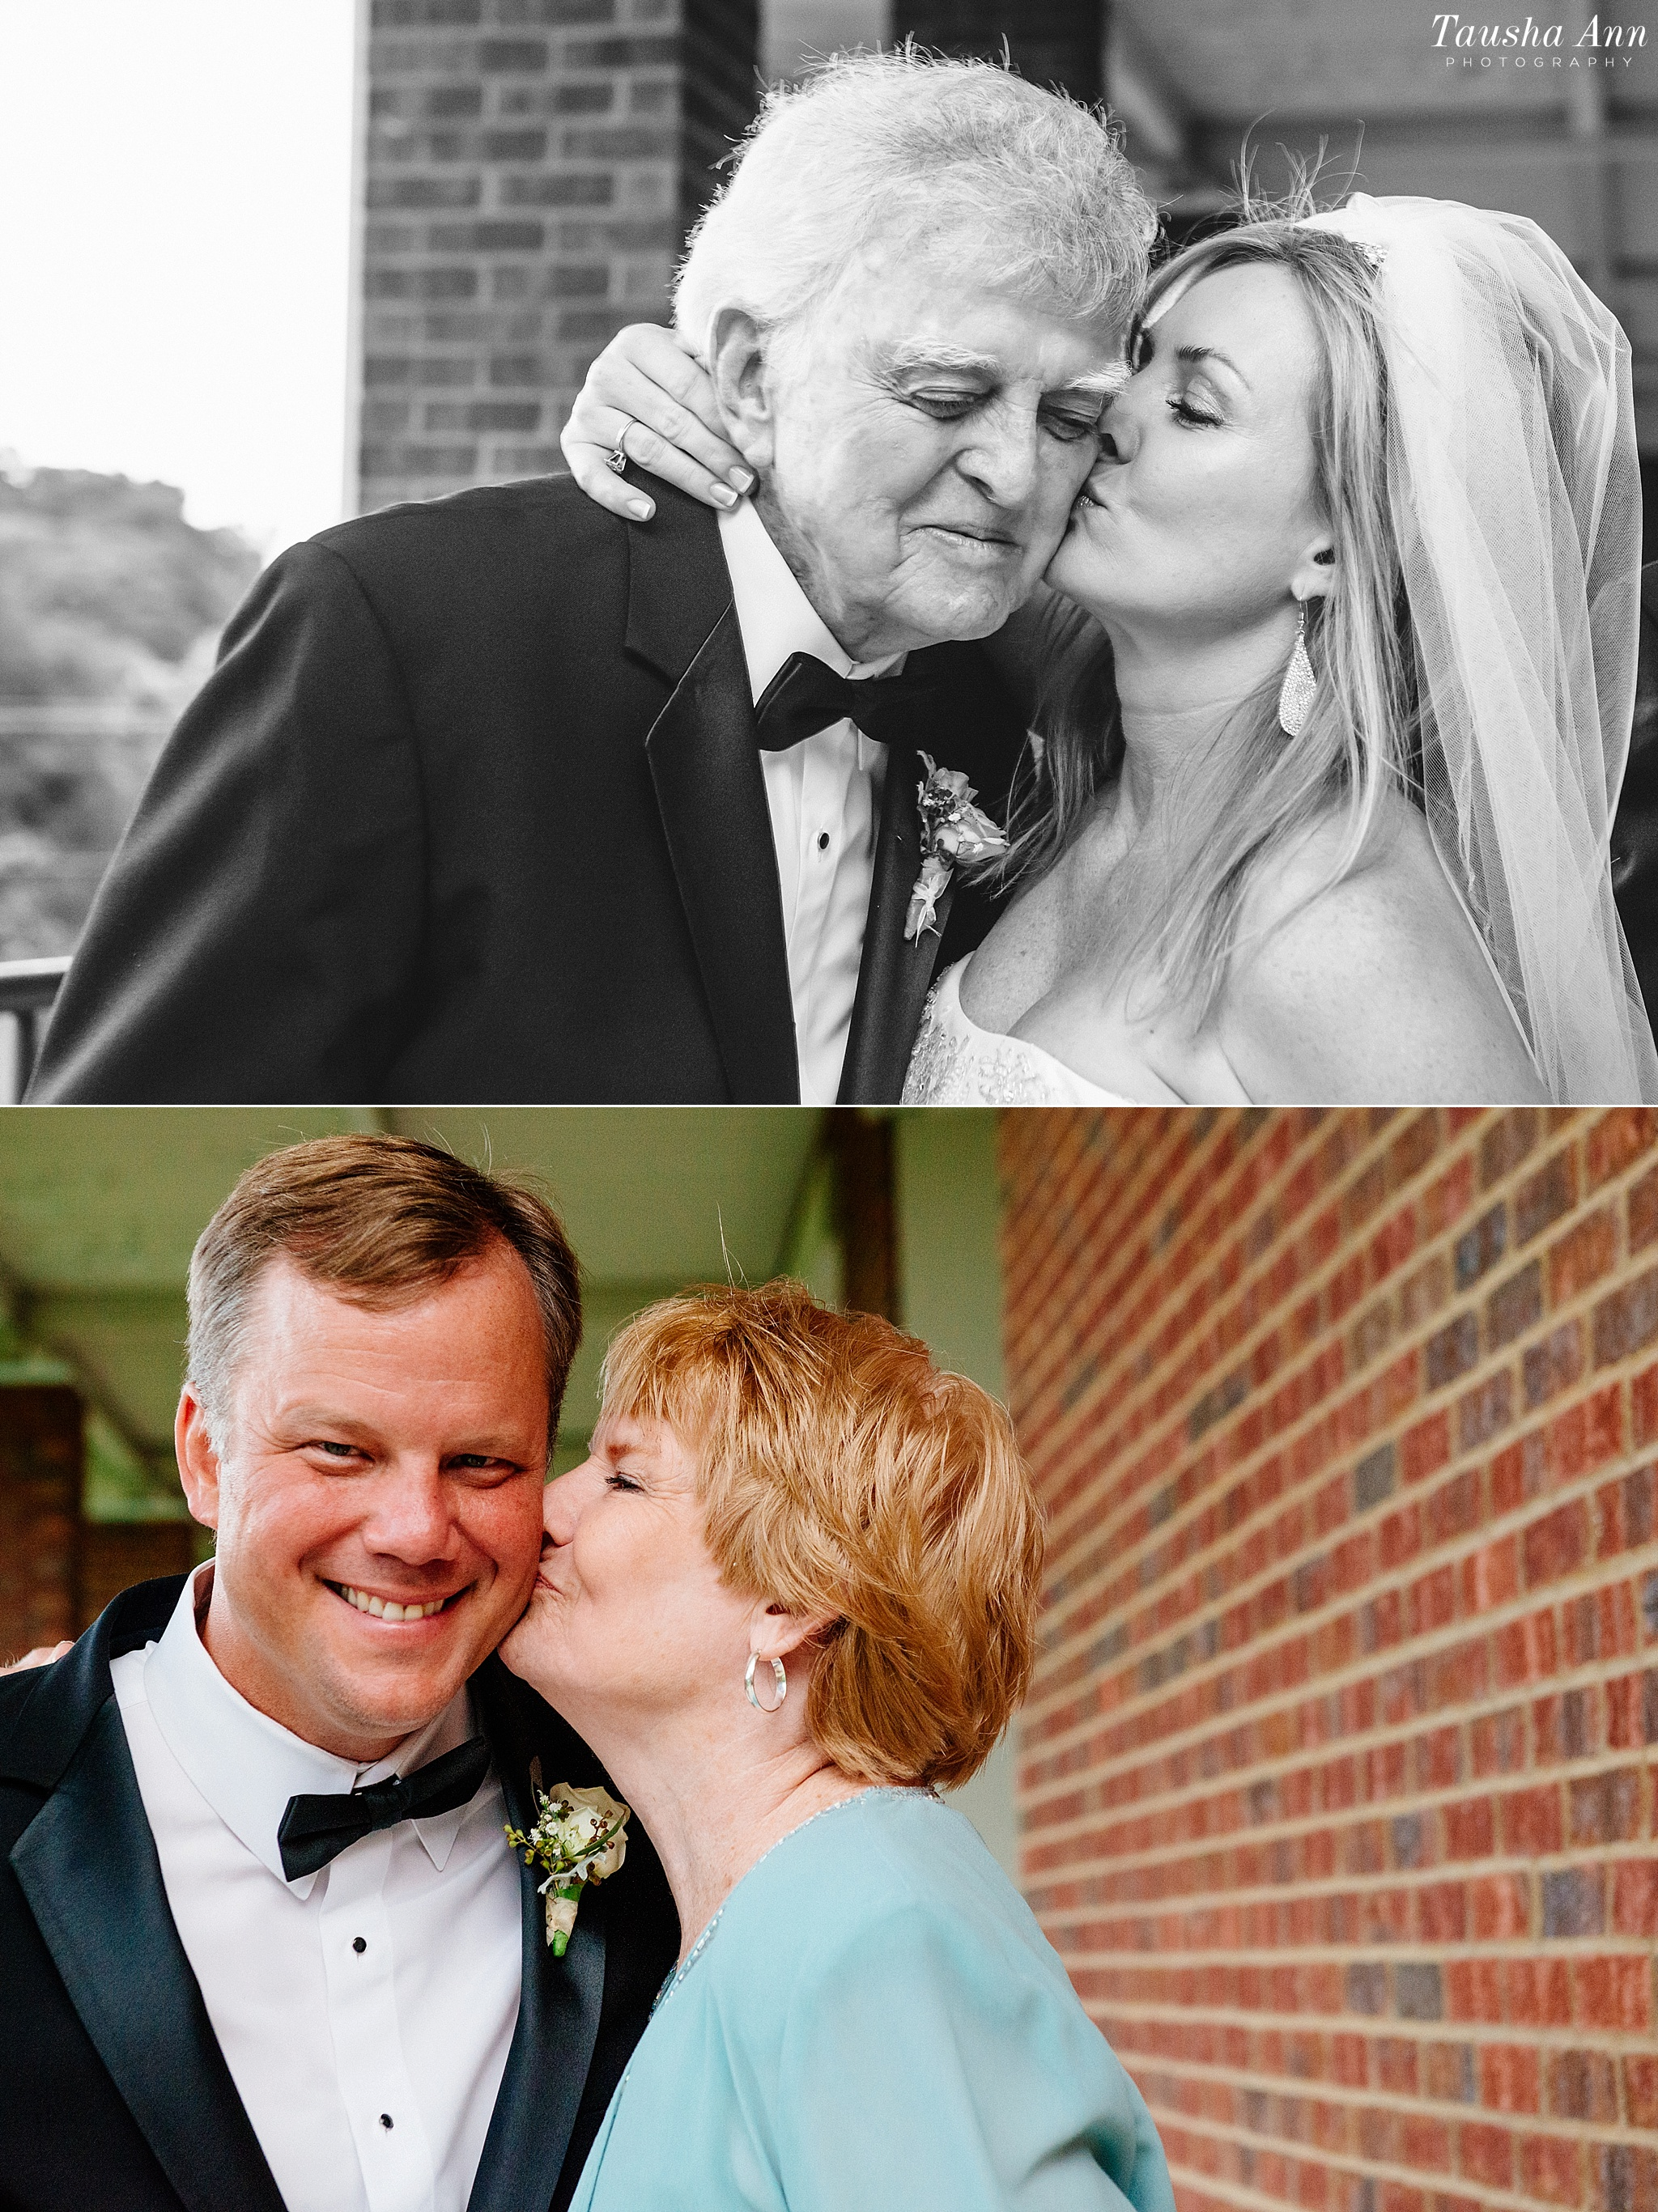 Nashville_Wedding_Photographer_Tausha_Dickinson_Photography_small_Family_Wedding_Franklin_TN_0063